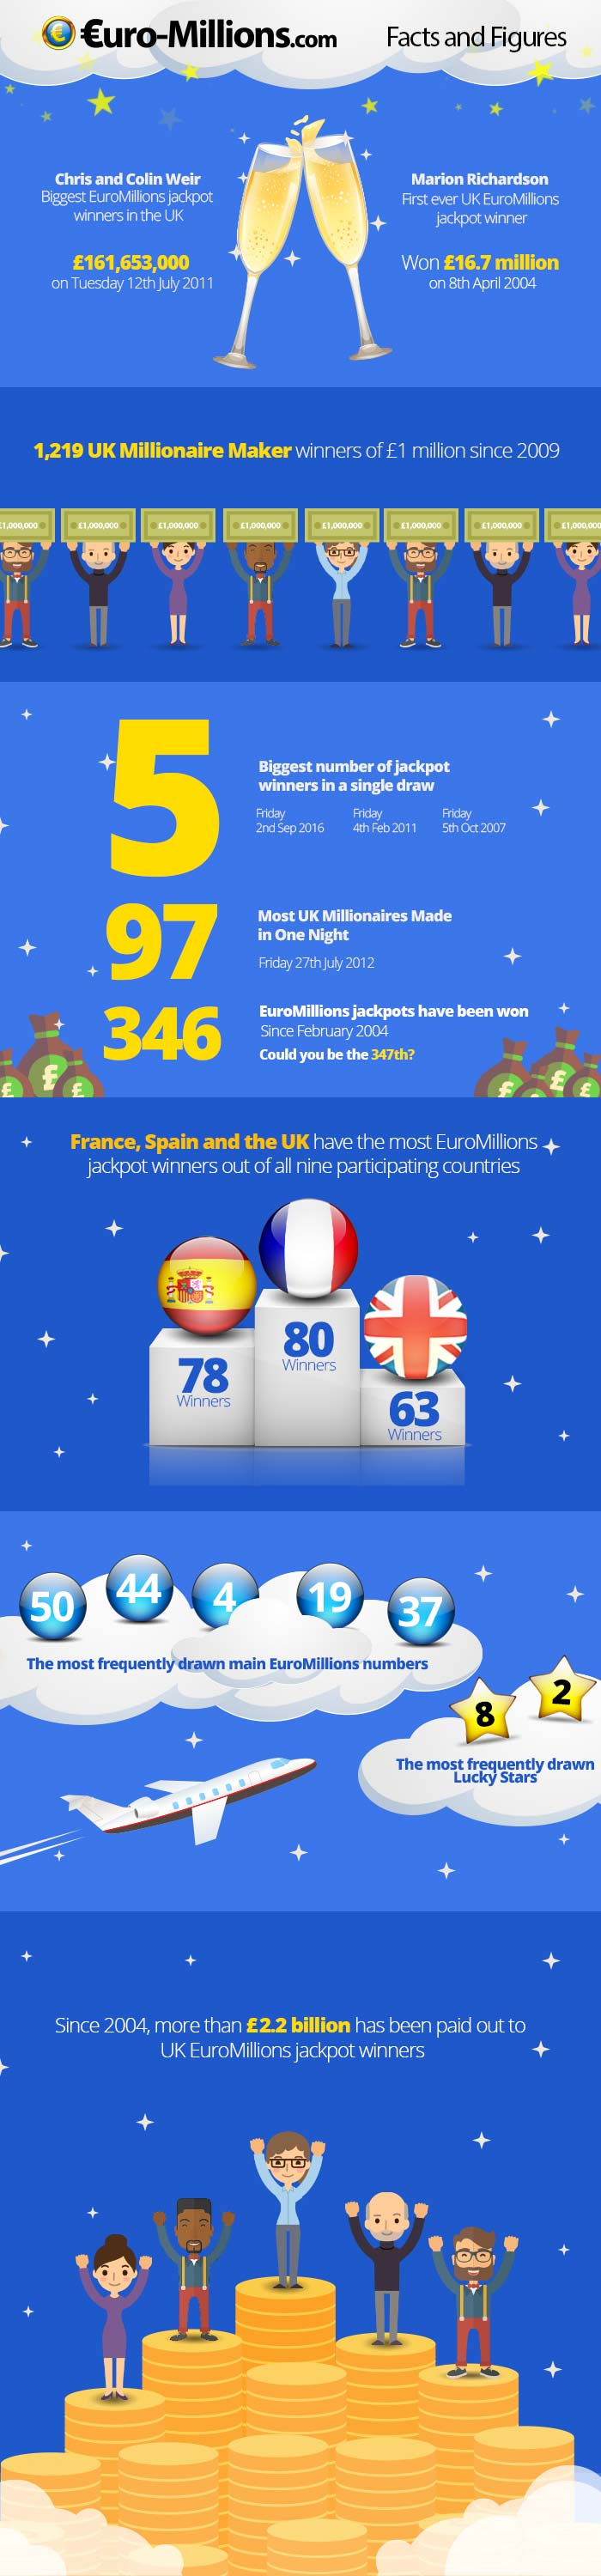 UK EuroMillions Facts Infographic